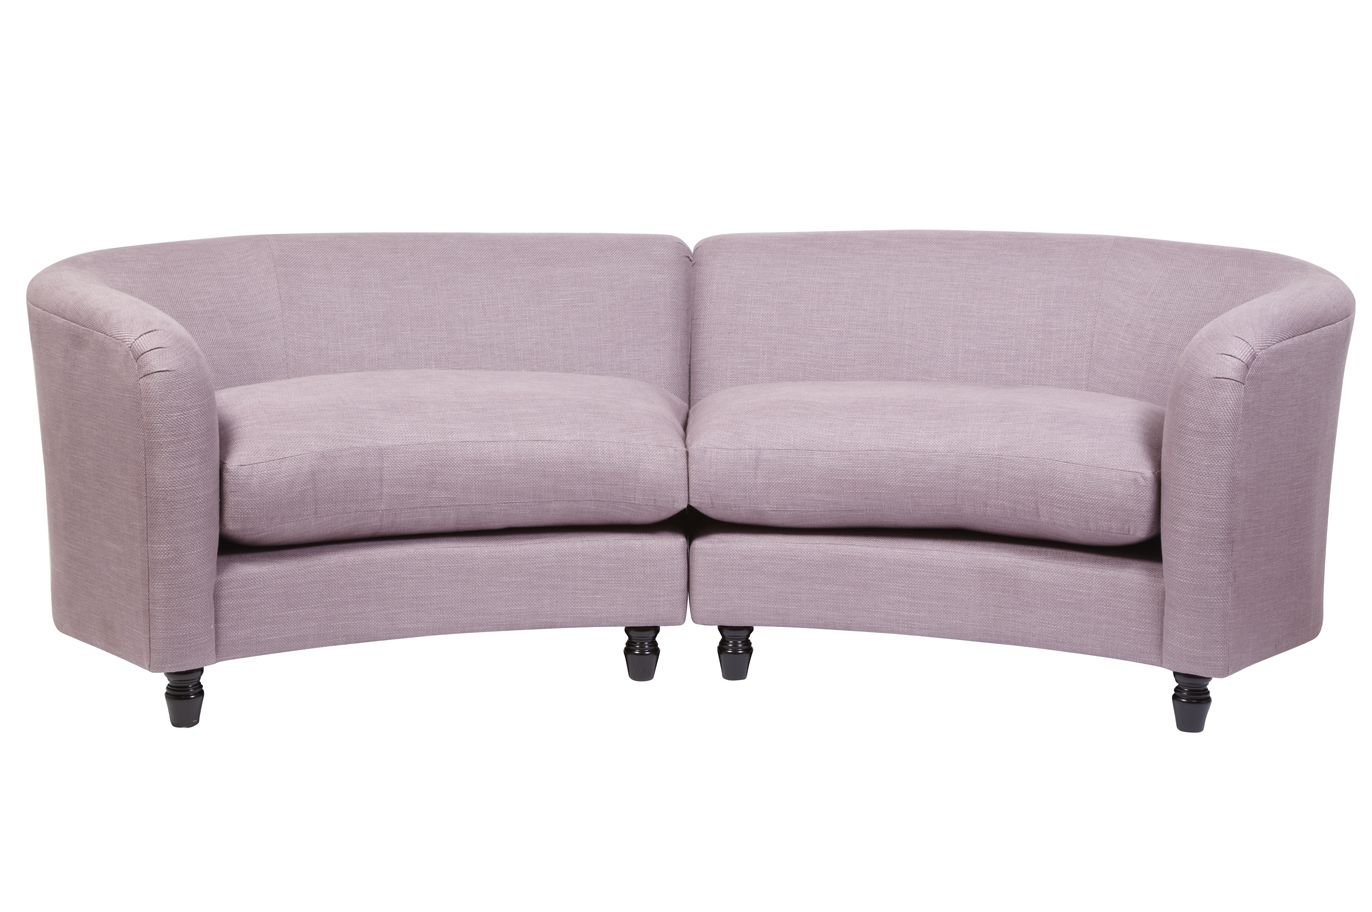 sofas laura ashley furniture two seater sofa bed uk home element astoria upholstered small curved